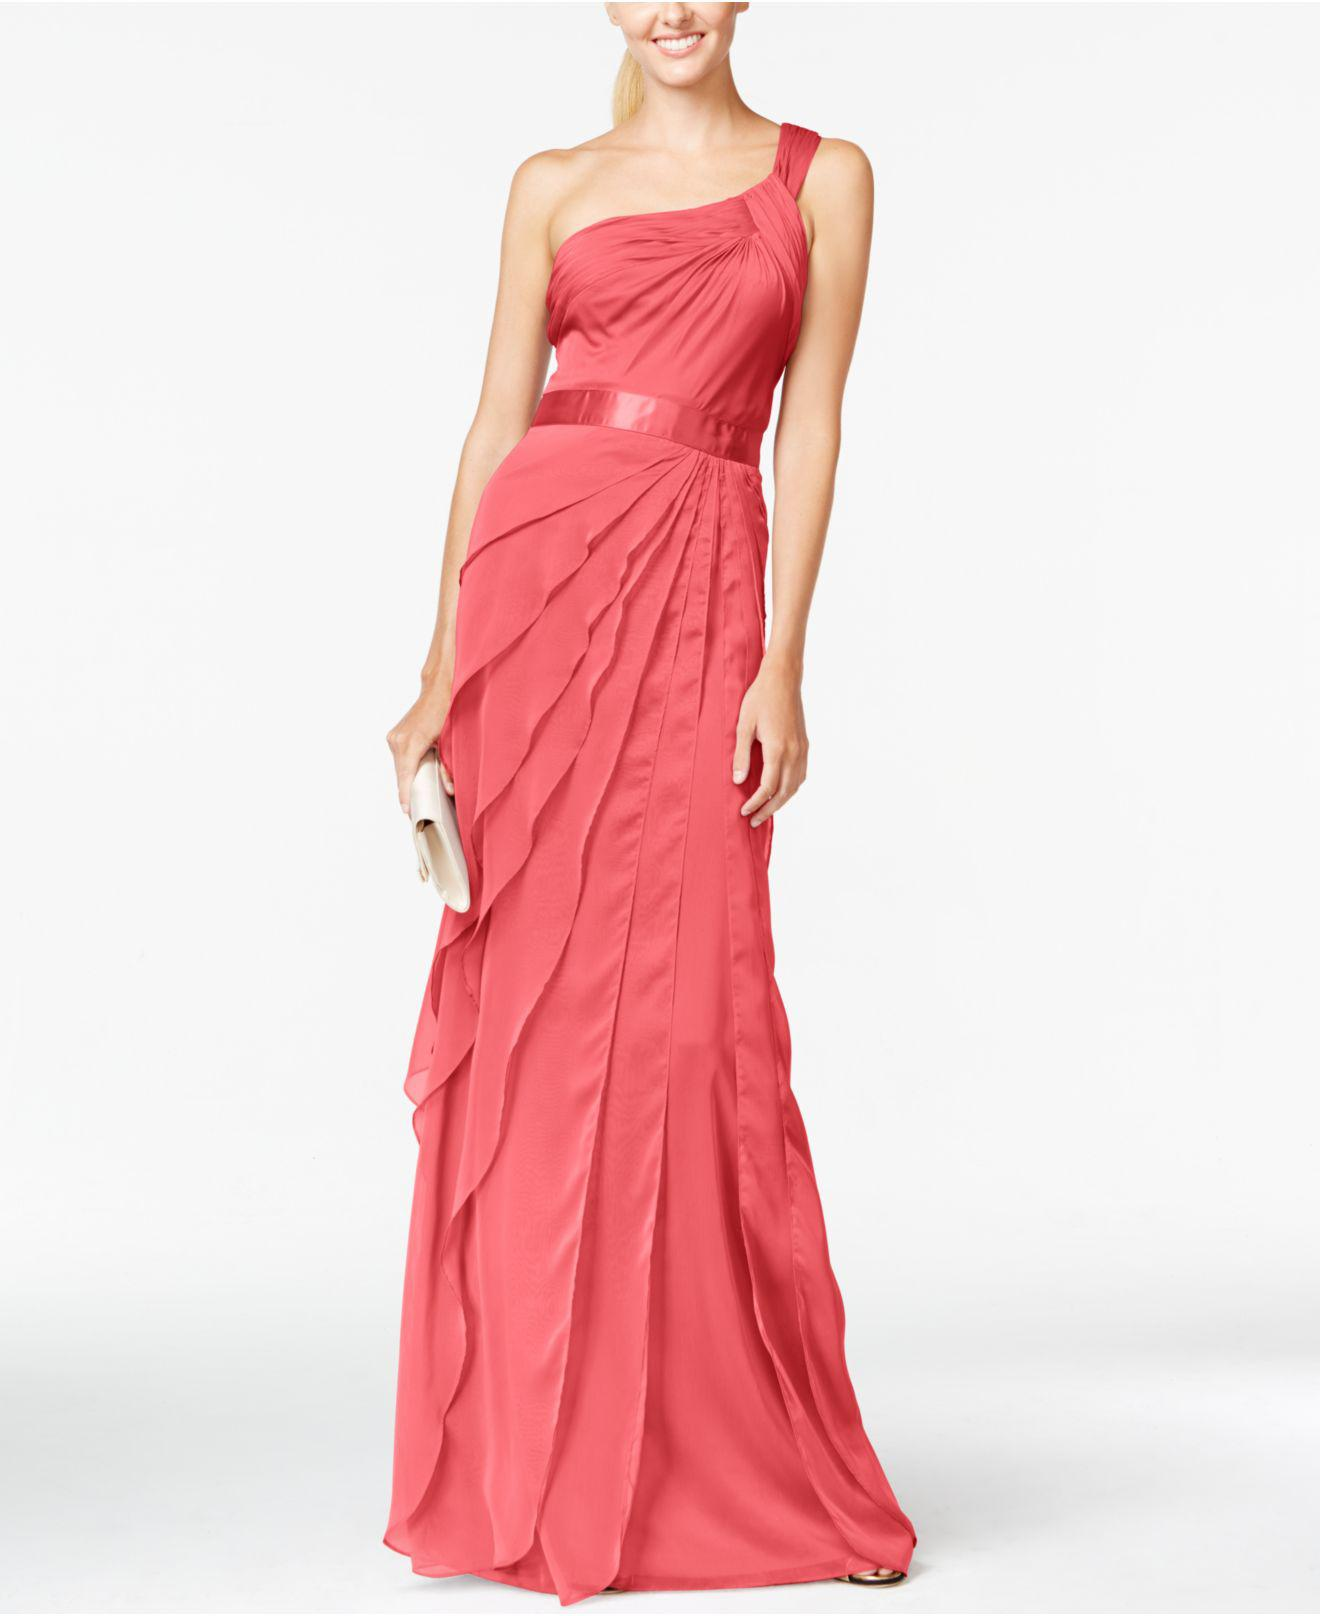 Lyst - Adrianna Papell One-Shoulder Tiered Chiffon Gown in Pink